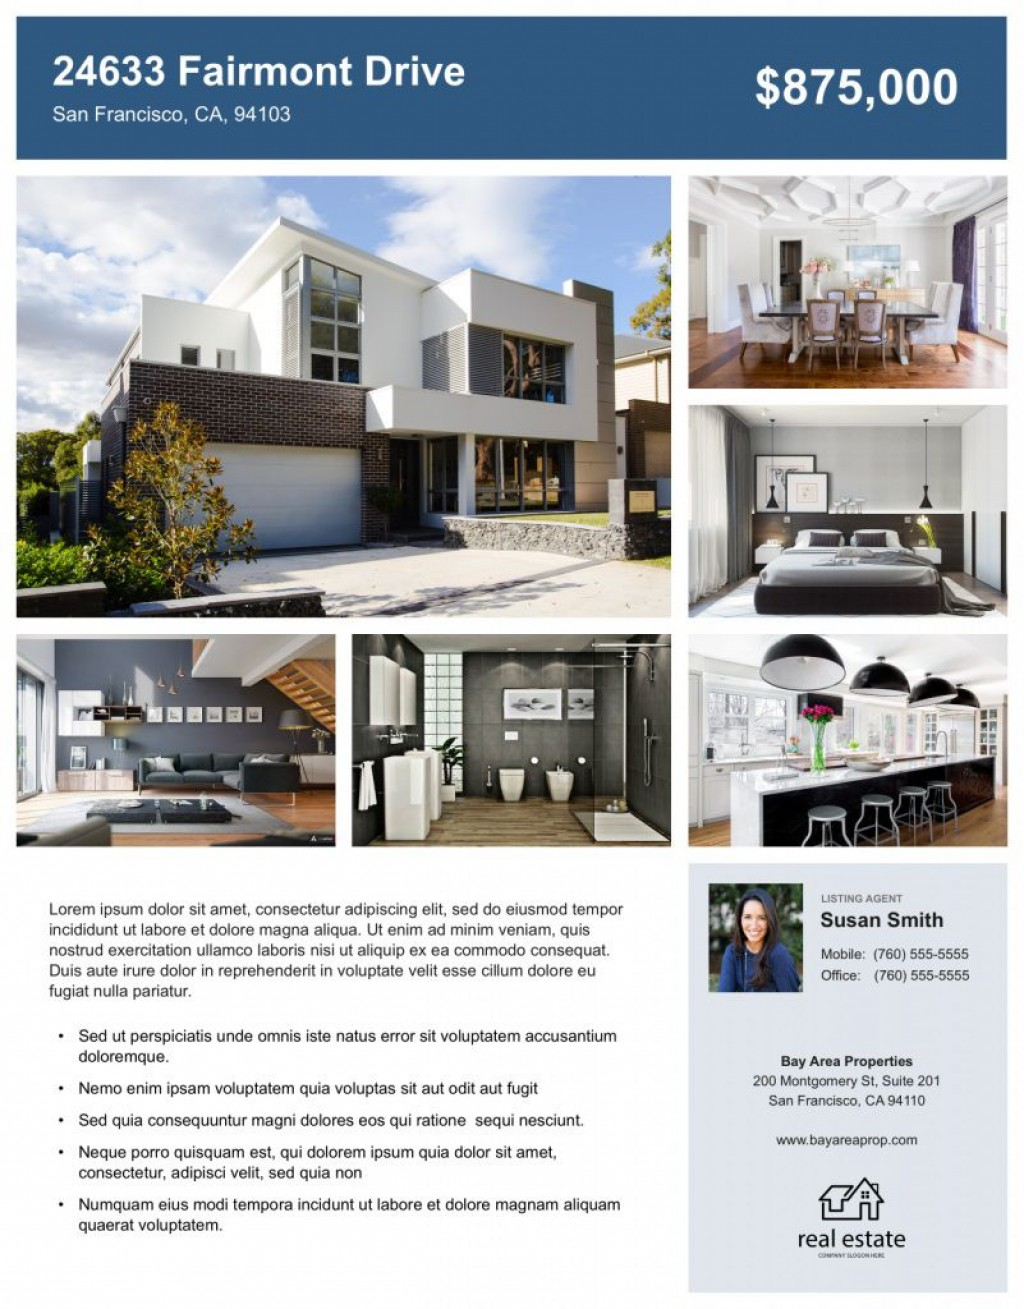 008 Impressive House For Sale Flyer Template Highest Quality  Free Real Estate Example By OwnerLarge